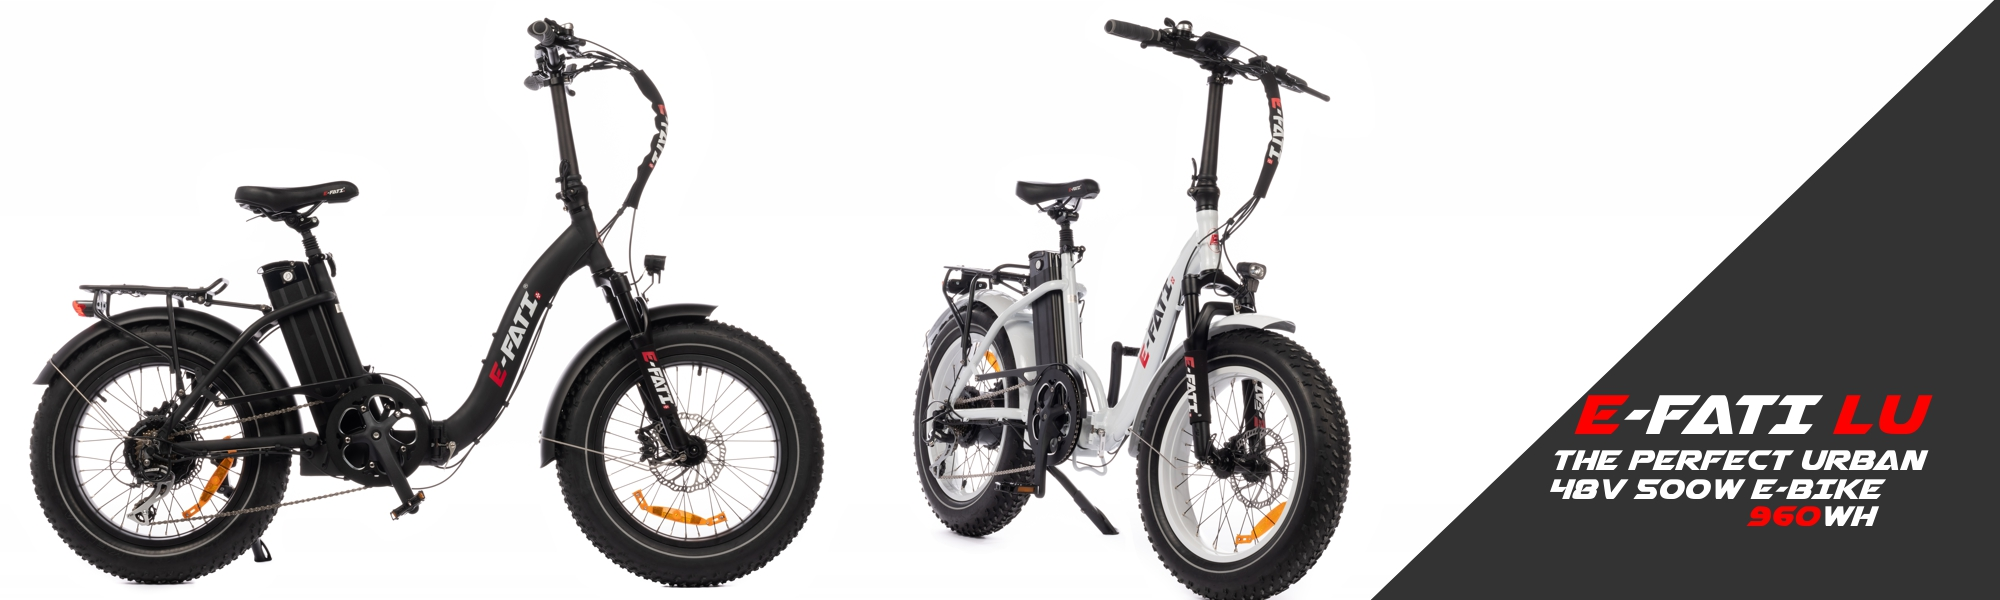 foldable electric fatbike